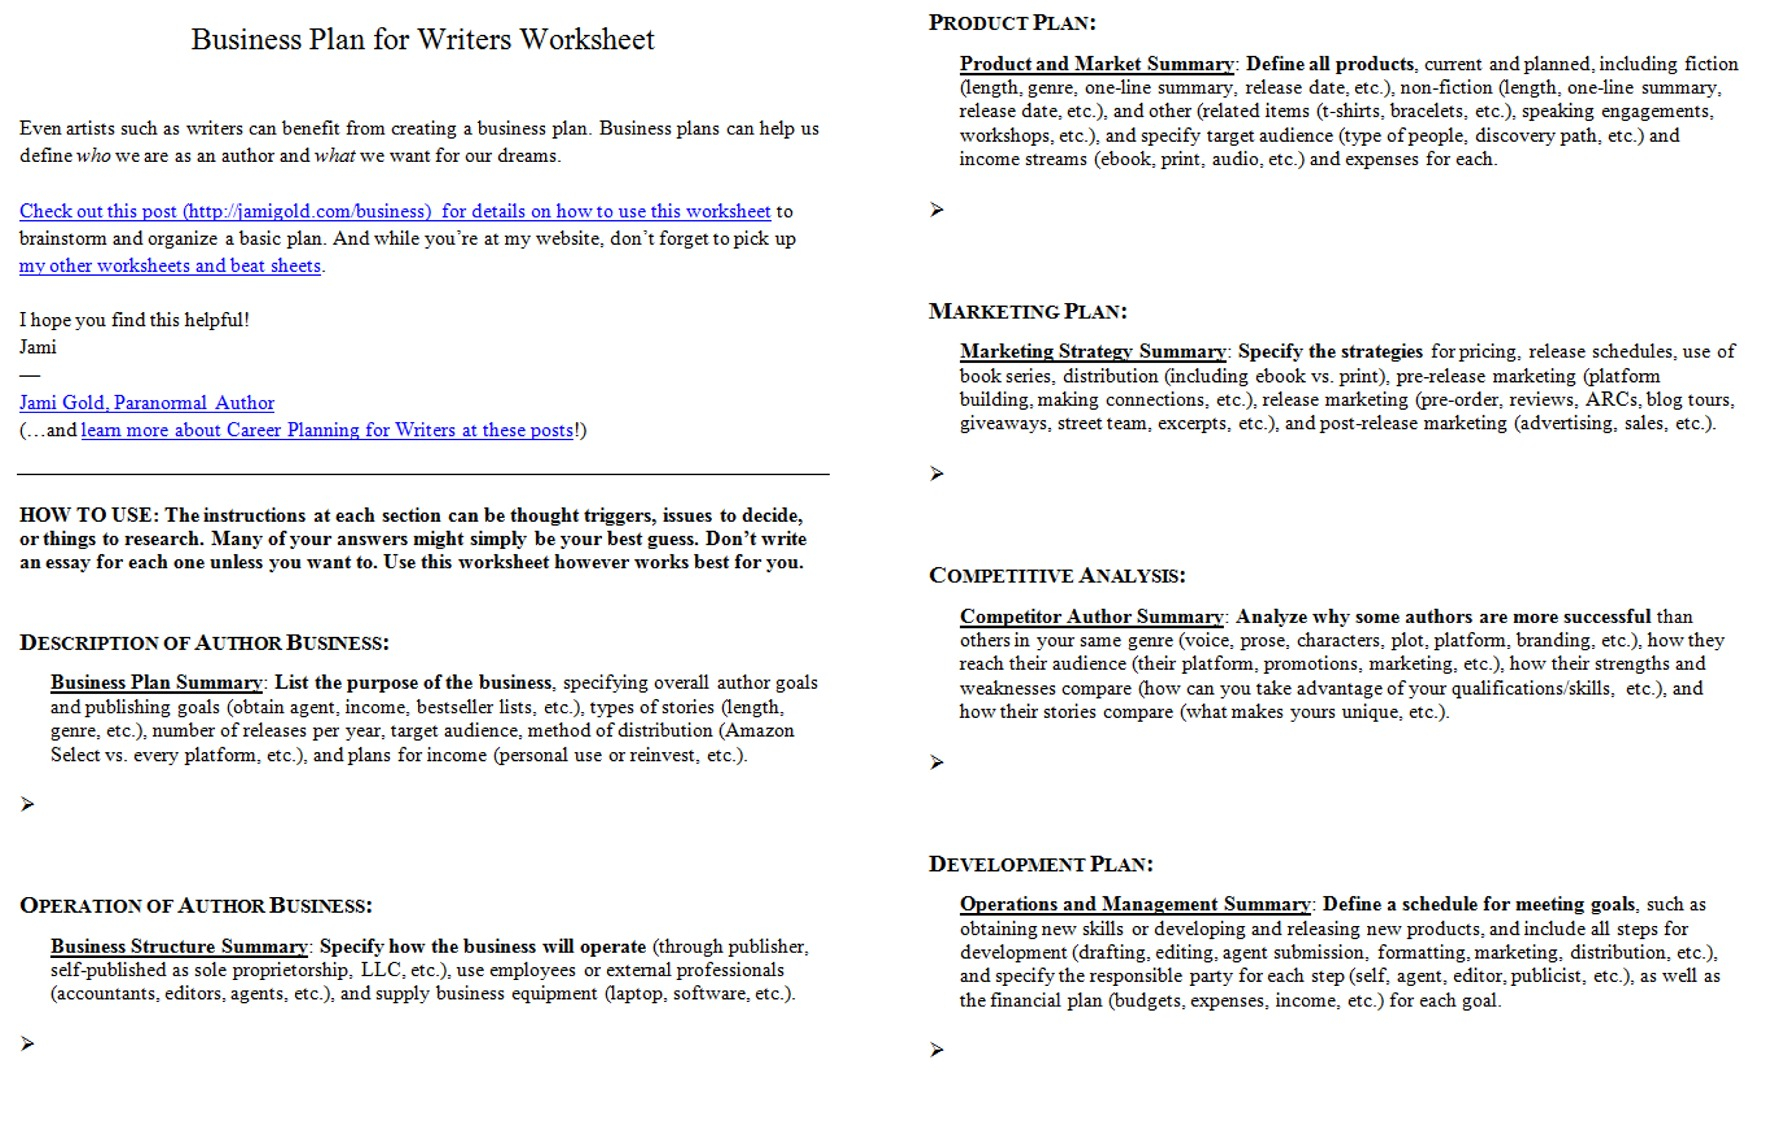 Aldiablosus  Surprising Worksheets For Writers  Jami Gold Paranormal Author With Gorgeous Screen Shot Of Both Pages Of The Business Plan For Writers Worksheet With Cool D Nealian Worksheets Printable Also Language Arts Worksheets High School In Addition Worksheet On Figurative Language And Addition Within  Worksheets As Well As Rd Grade Fact And Opinion Worksheets Additionally Irs Worksheets  From Jamigoldcom With Aldiablosus  Gorgeous Worksheets For Writers  Jami Gold Paranormal Author With Cool Screen Shot Of Both Pages Of The Business Plan For Writers Worksheet And Surprising D Nealian Worksheets Printable Also Language Arts Worksheets High School In Addition Worksheet On Figurative Language From Jamigoldcom